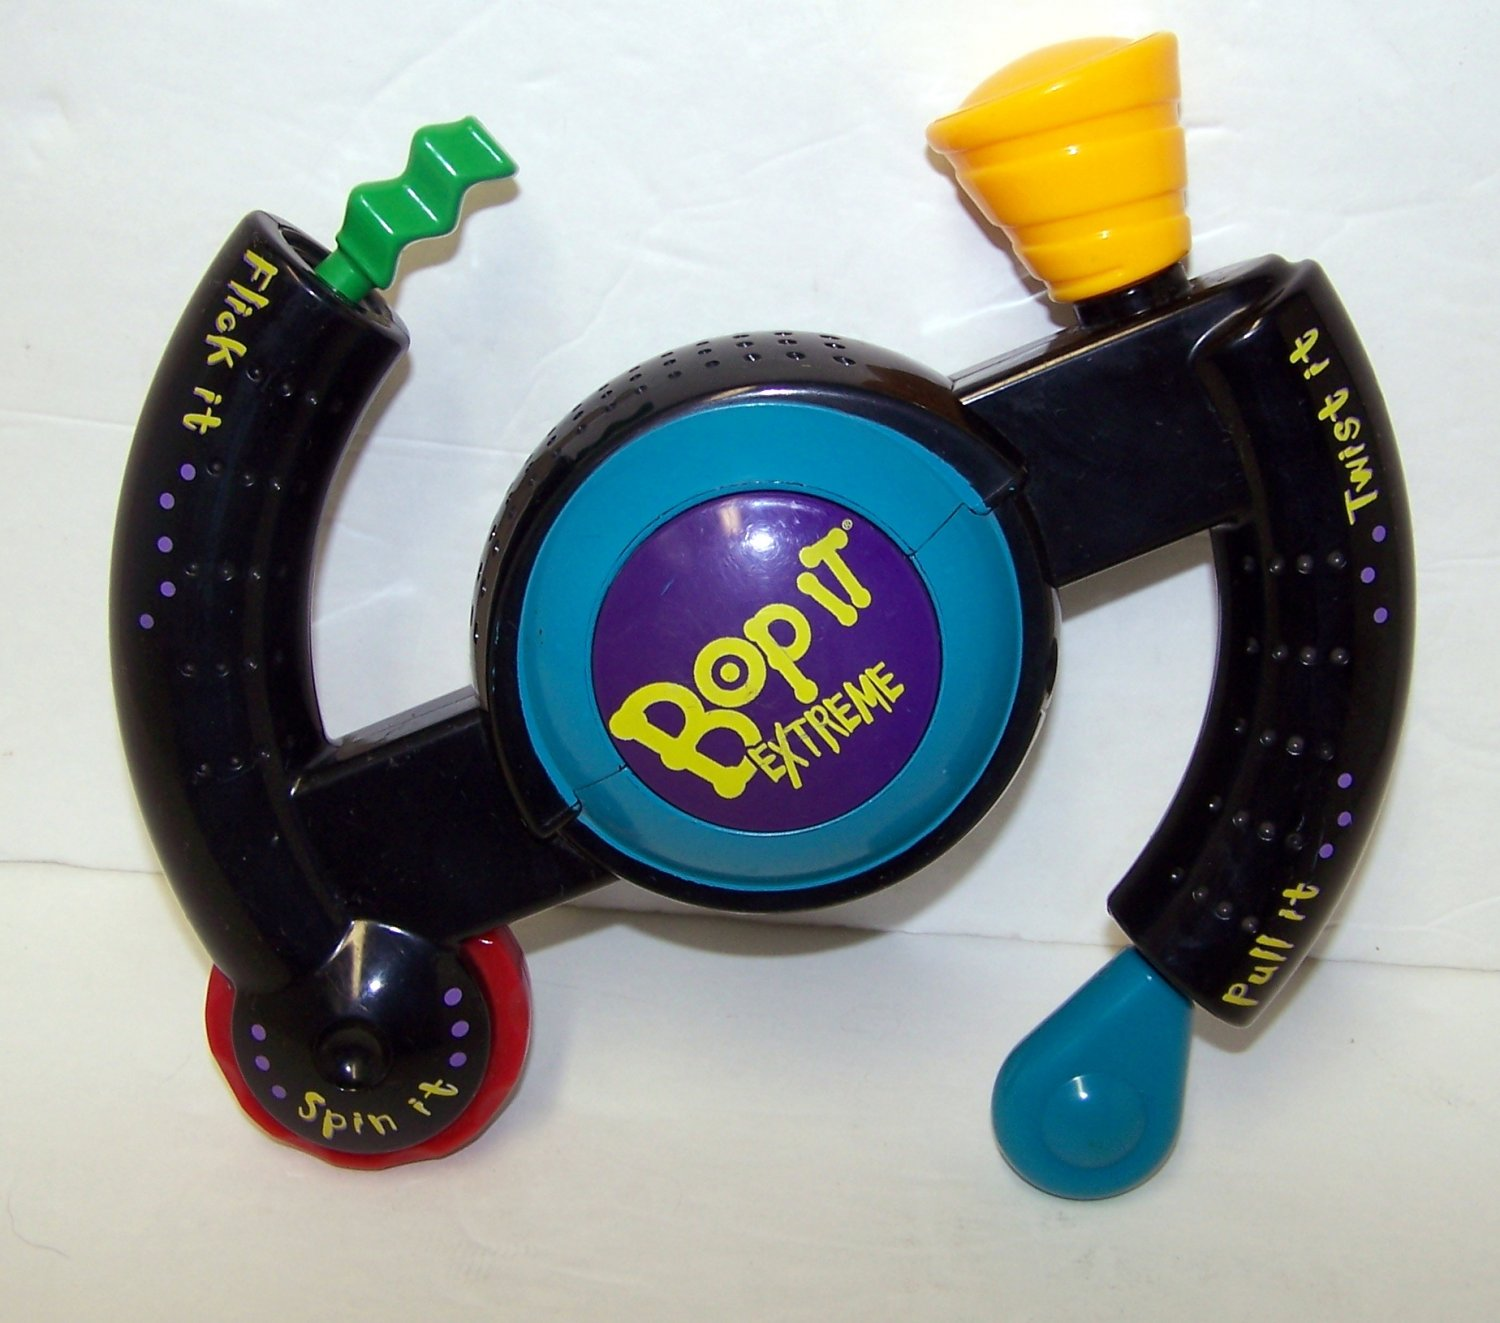 bop it game instructions